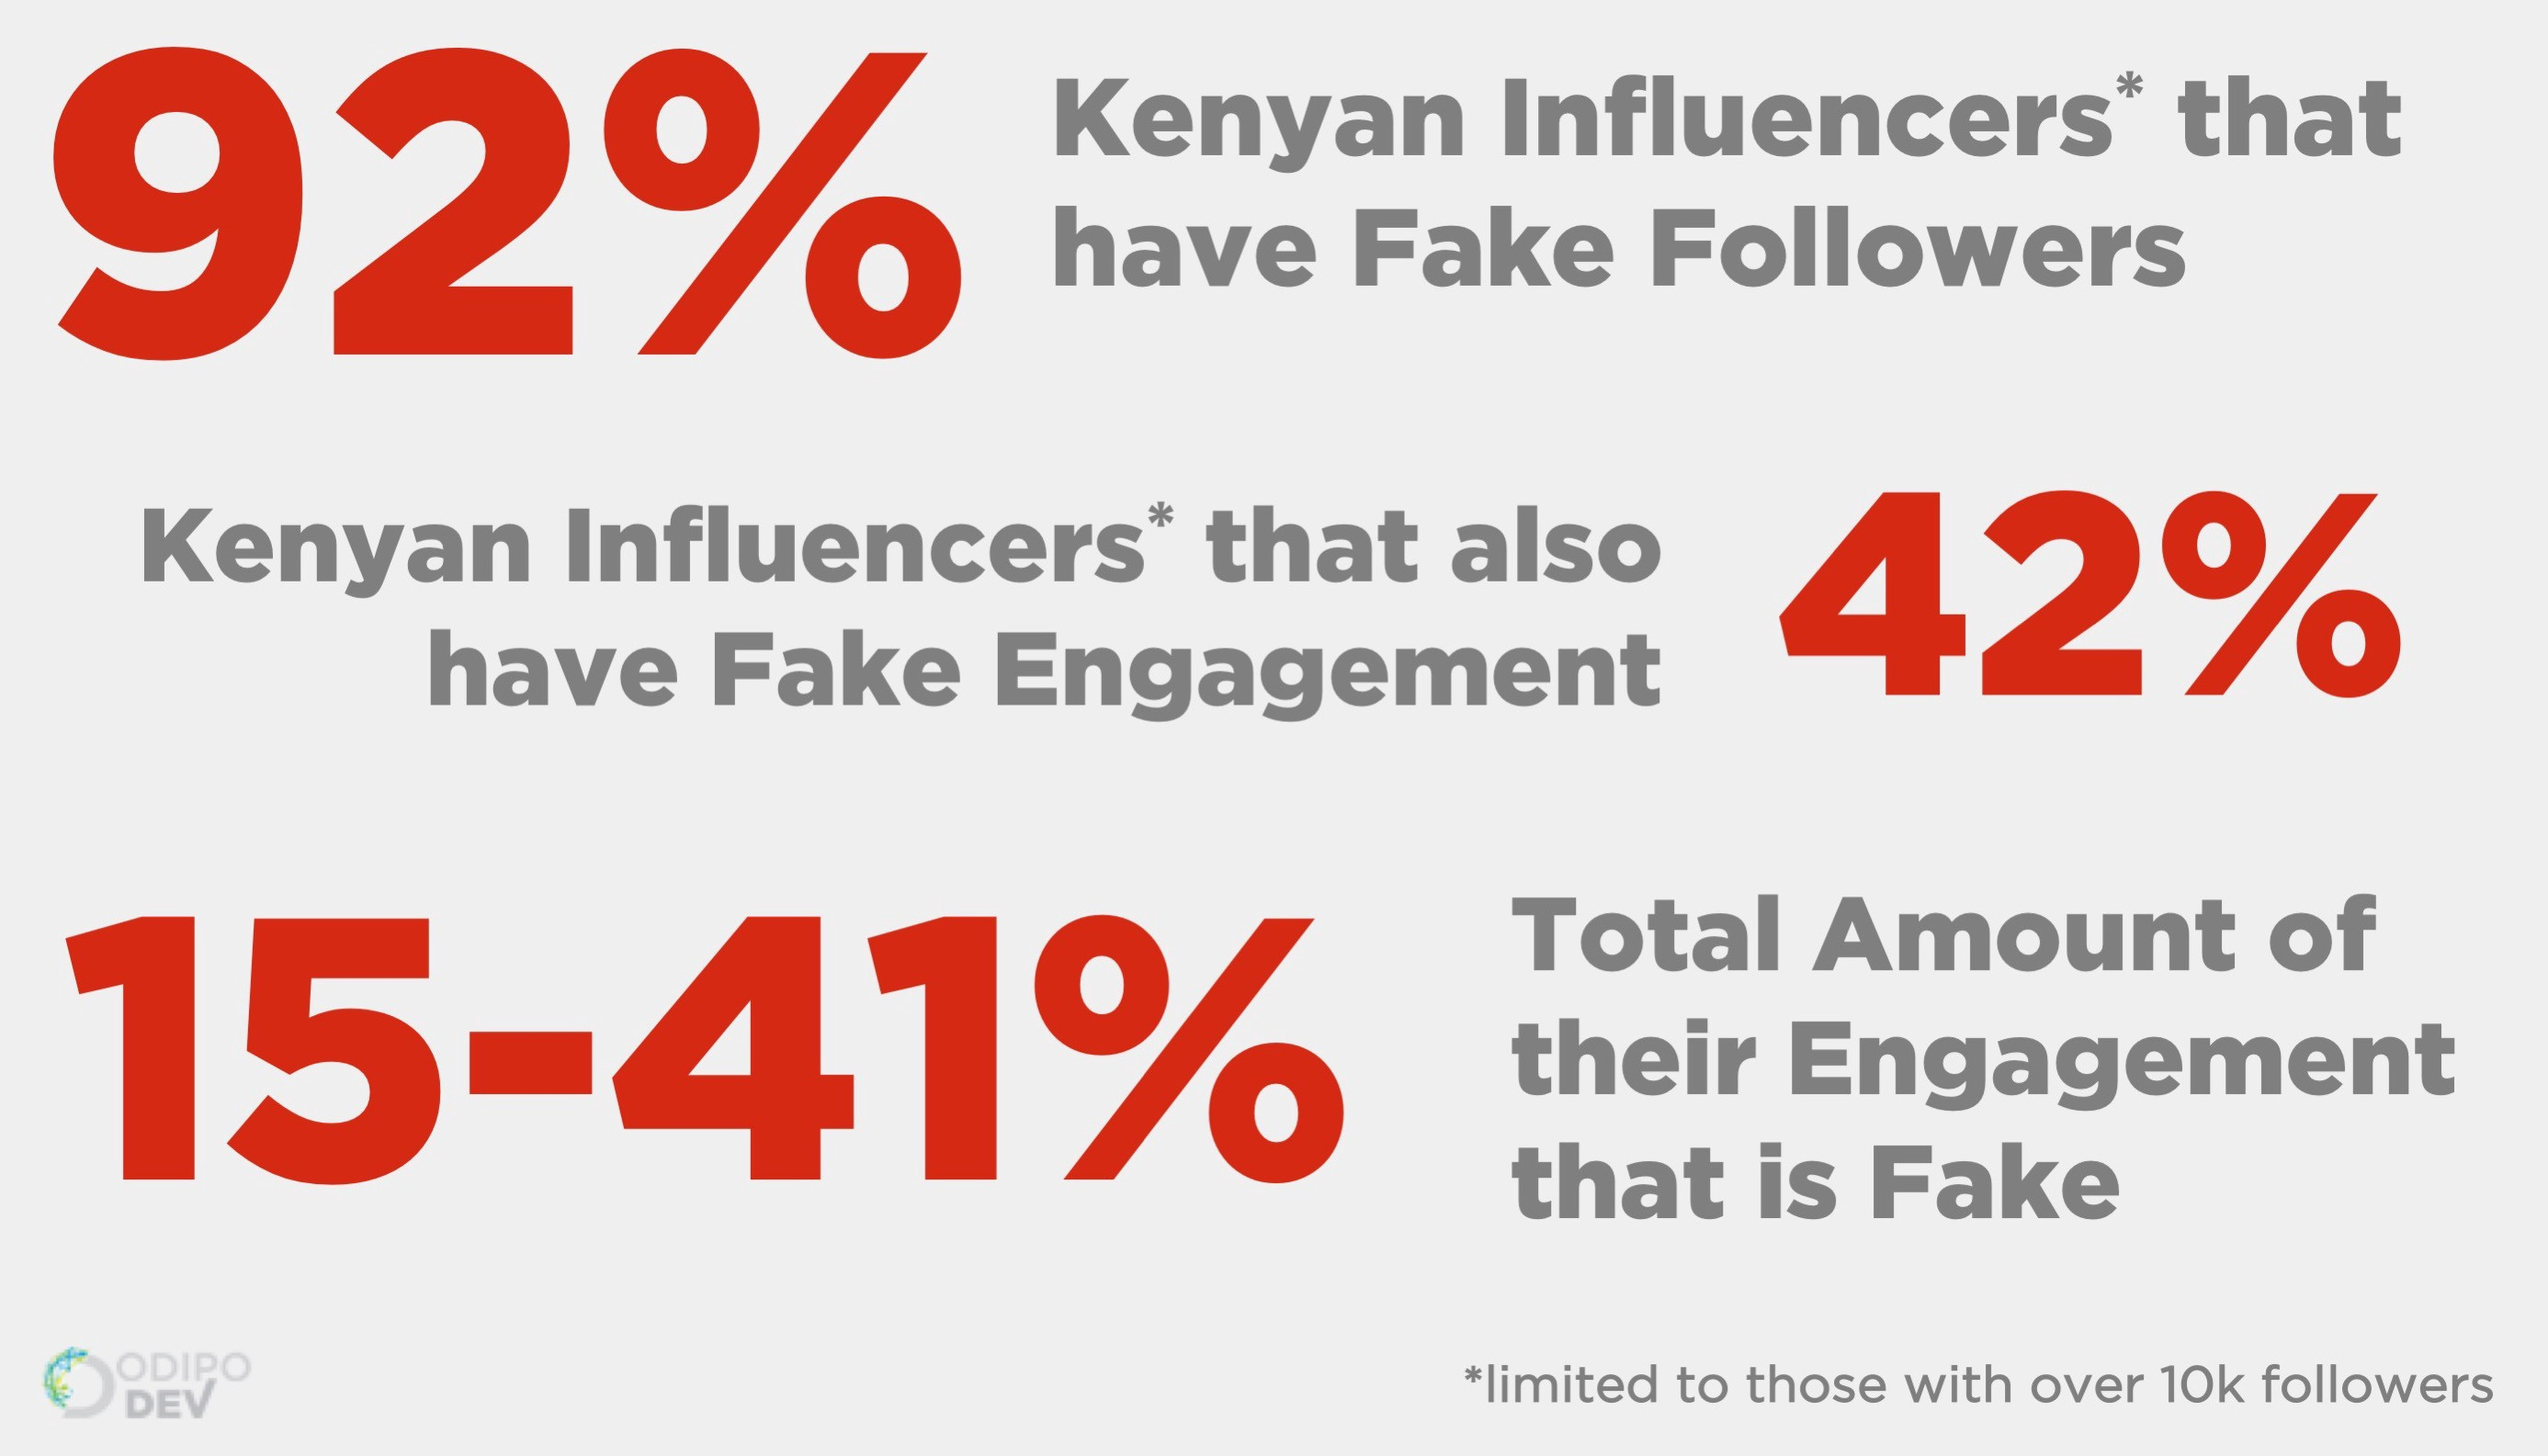 Have Brands Been Paying Leading Kenyan Influencers for Fake